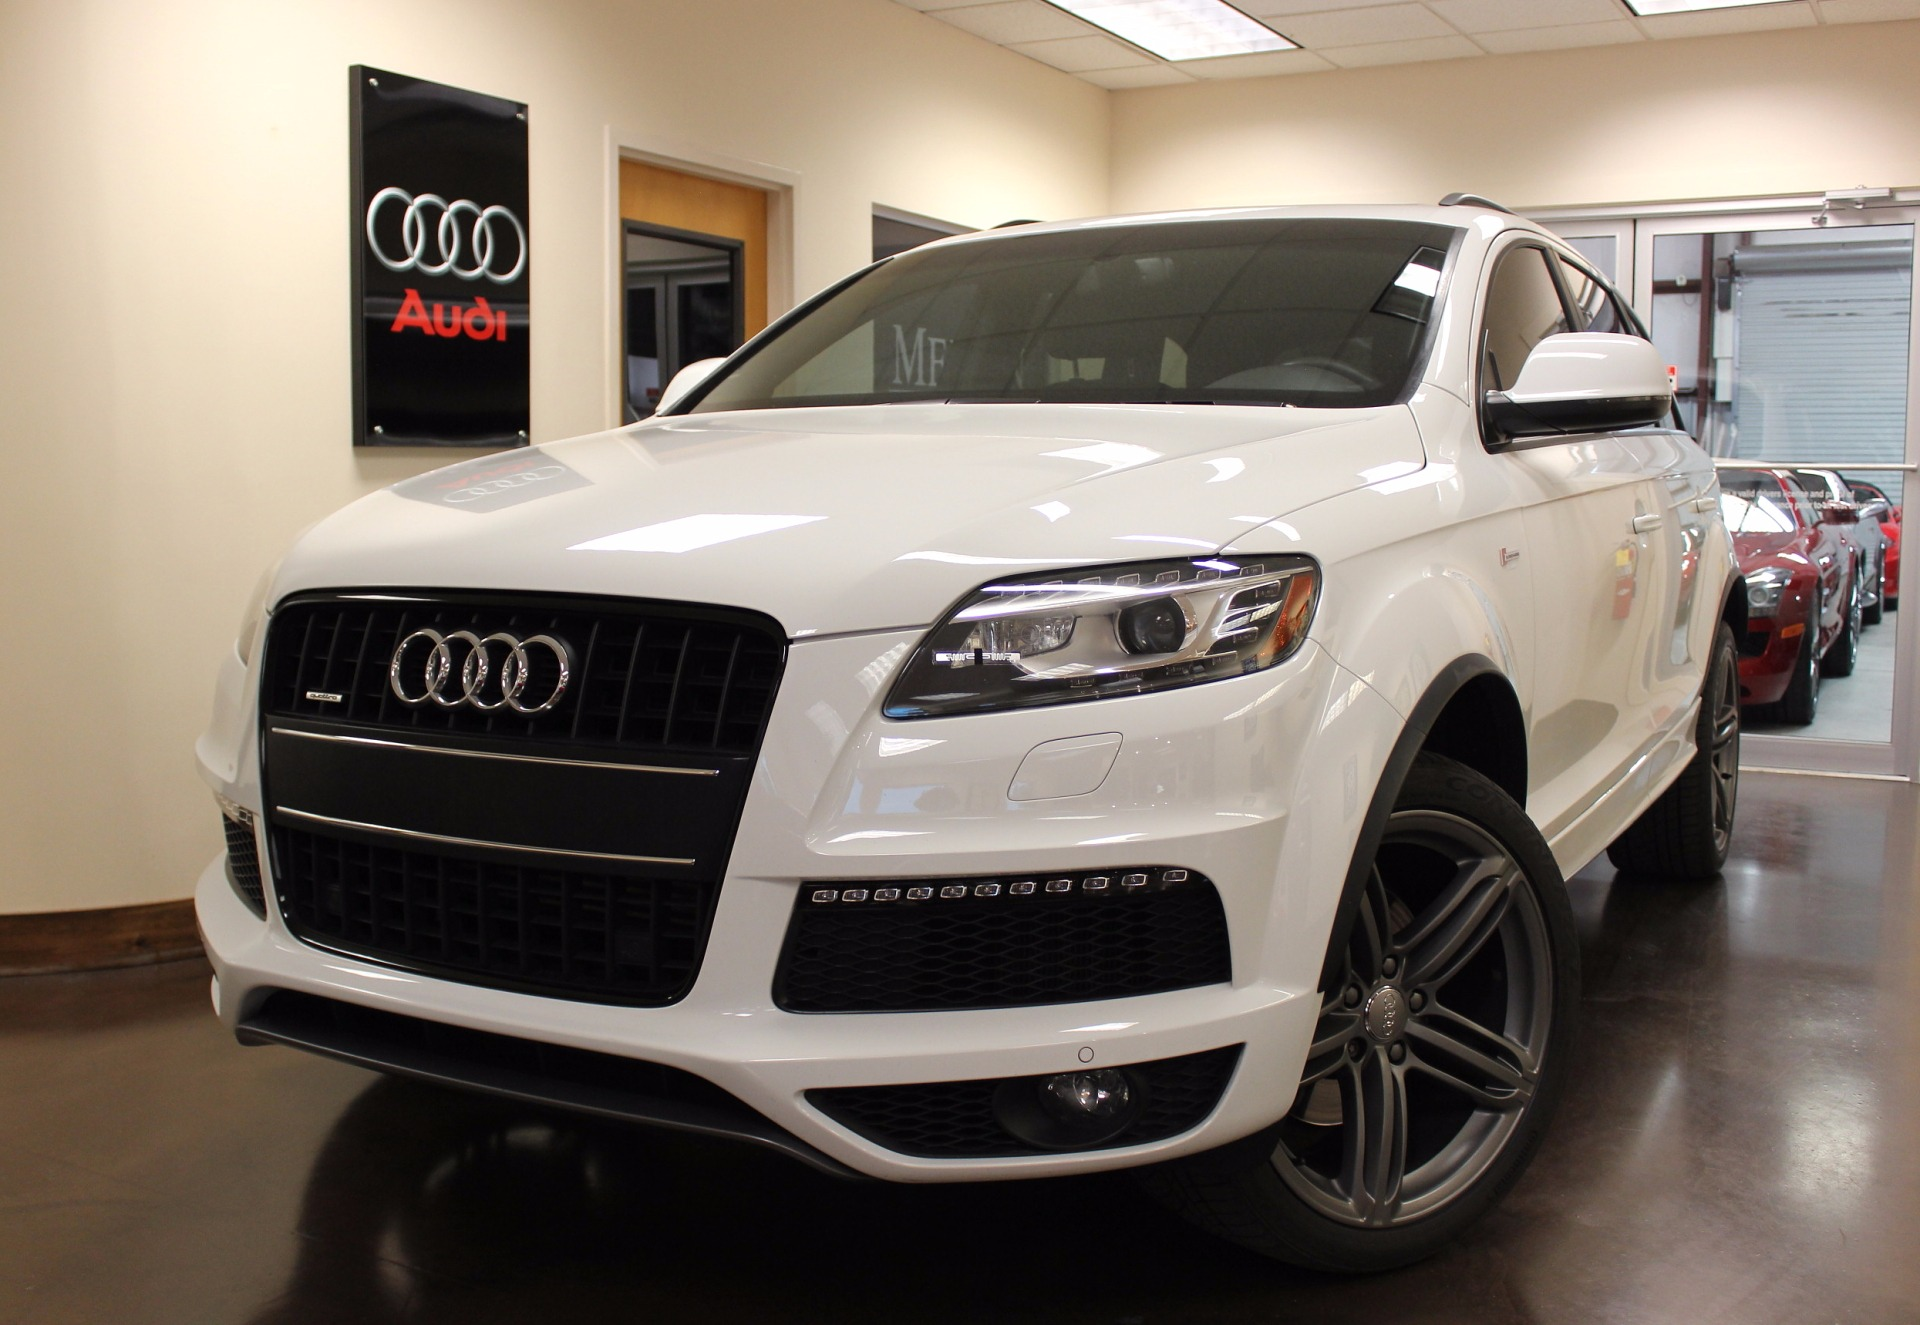 used 2014 audi q7 stock p3810 ultra luxury car from merlin auto group. Black Bedroom Furniture Sets. Home Design Ideas